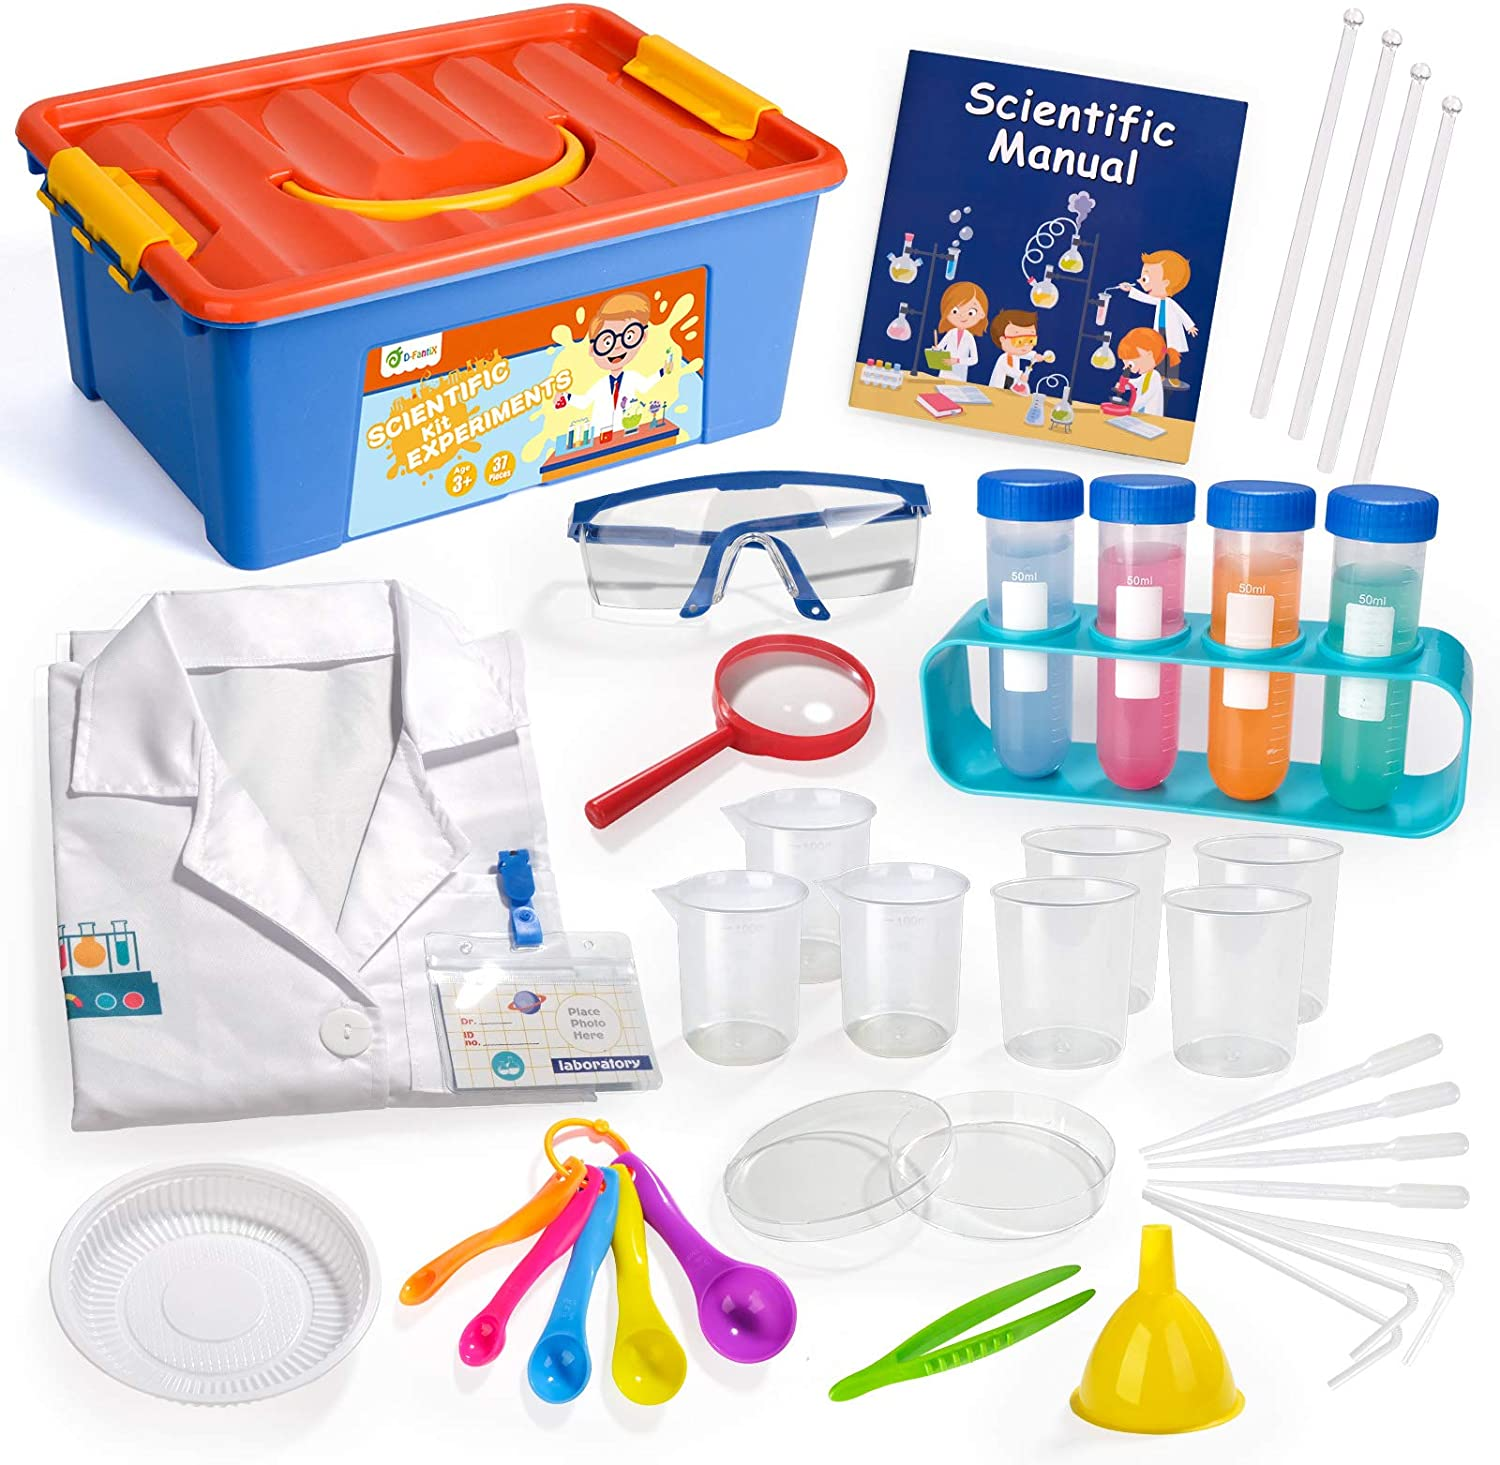 D-FantiX Kids Science Experiment Kit with Lab Coat, 36Pcs Pretend Play Science Kit with Goggles Spoons Toy Laboratory Set Role Play Scientist Costume STEM Toys Gift for Toddlers Age 3 4 5 6 7 8 9 10: Toys & Games